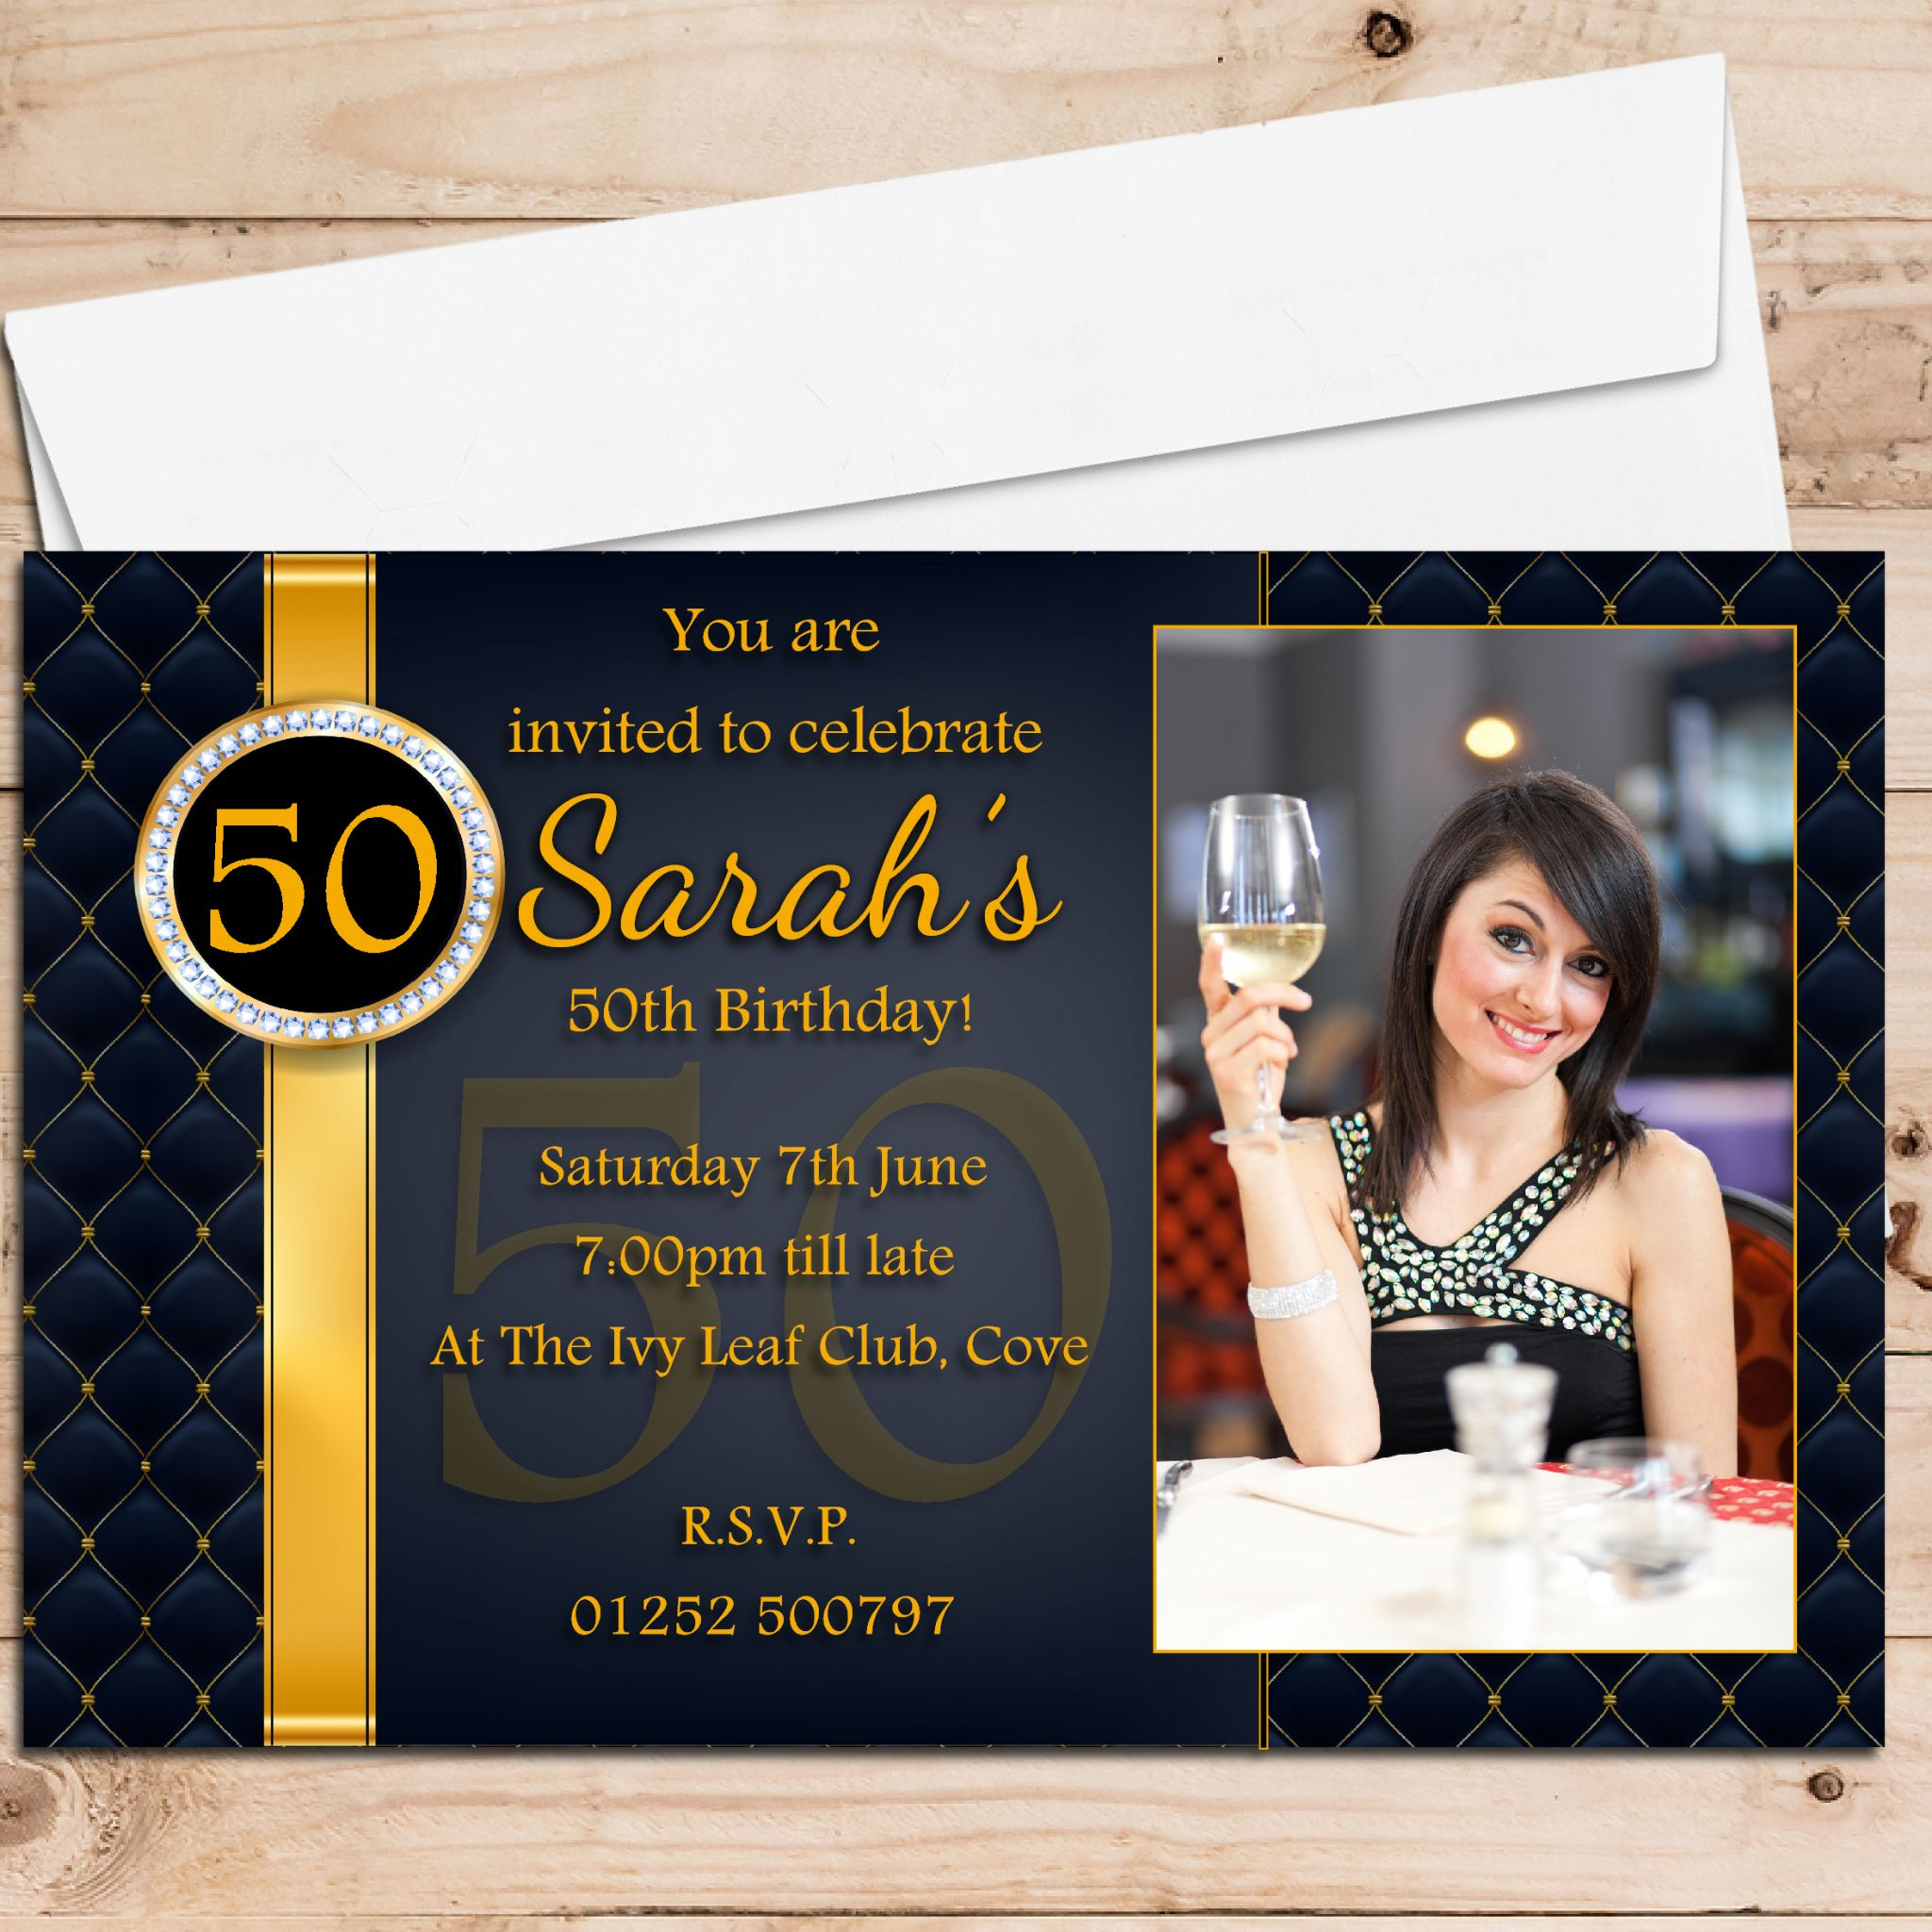 10 Personalised Black Gold Diamond Quilt Birthday Party Invitations N216 ANY AGE